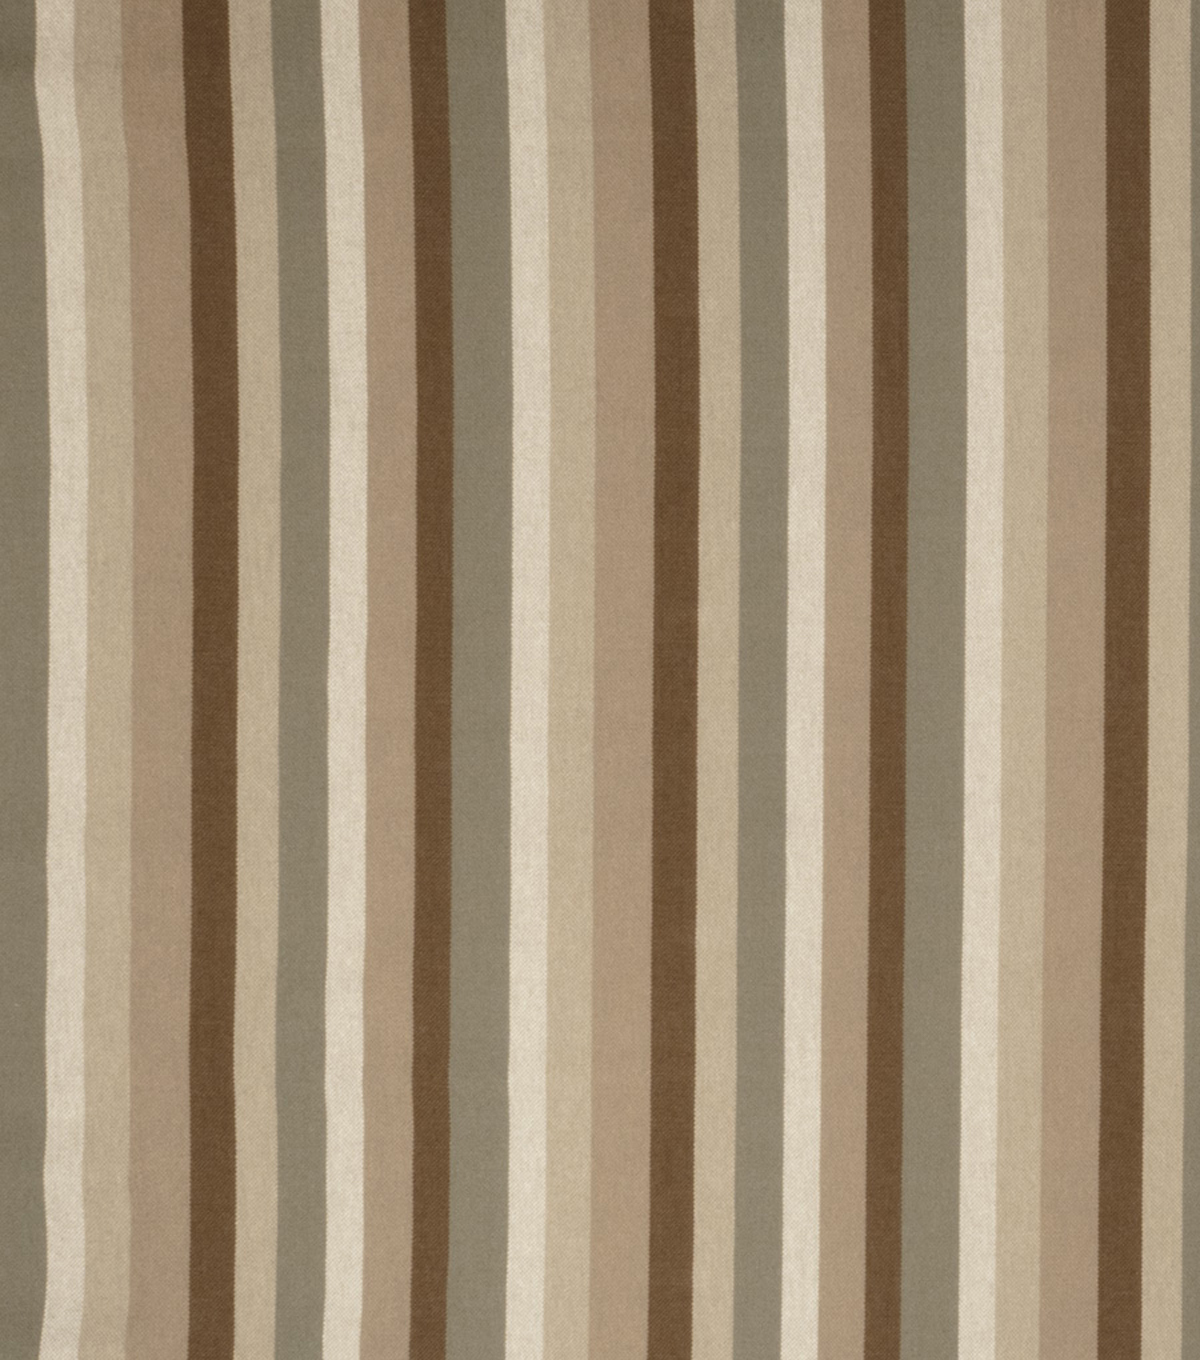 Home Decor 8\u0022x8\u0022 Fabric Swatch-SMC Designs Walker / Marsh